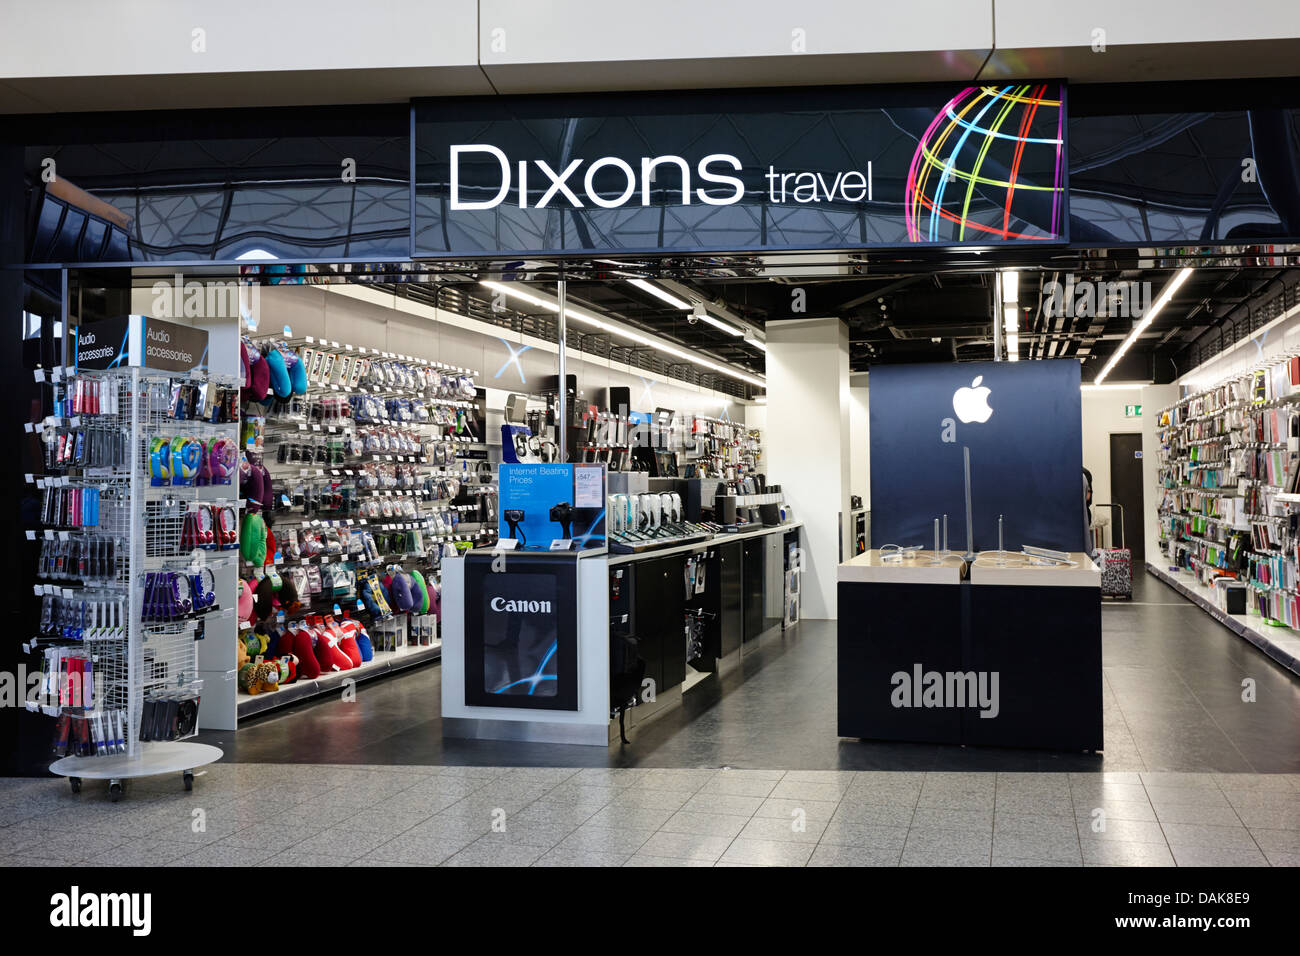 Dixons travel store Londres Stansted Essex, Angleterre Royaume-Uni Photo Stock